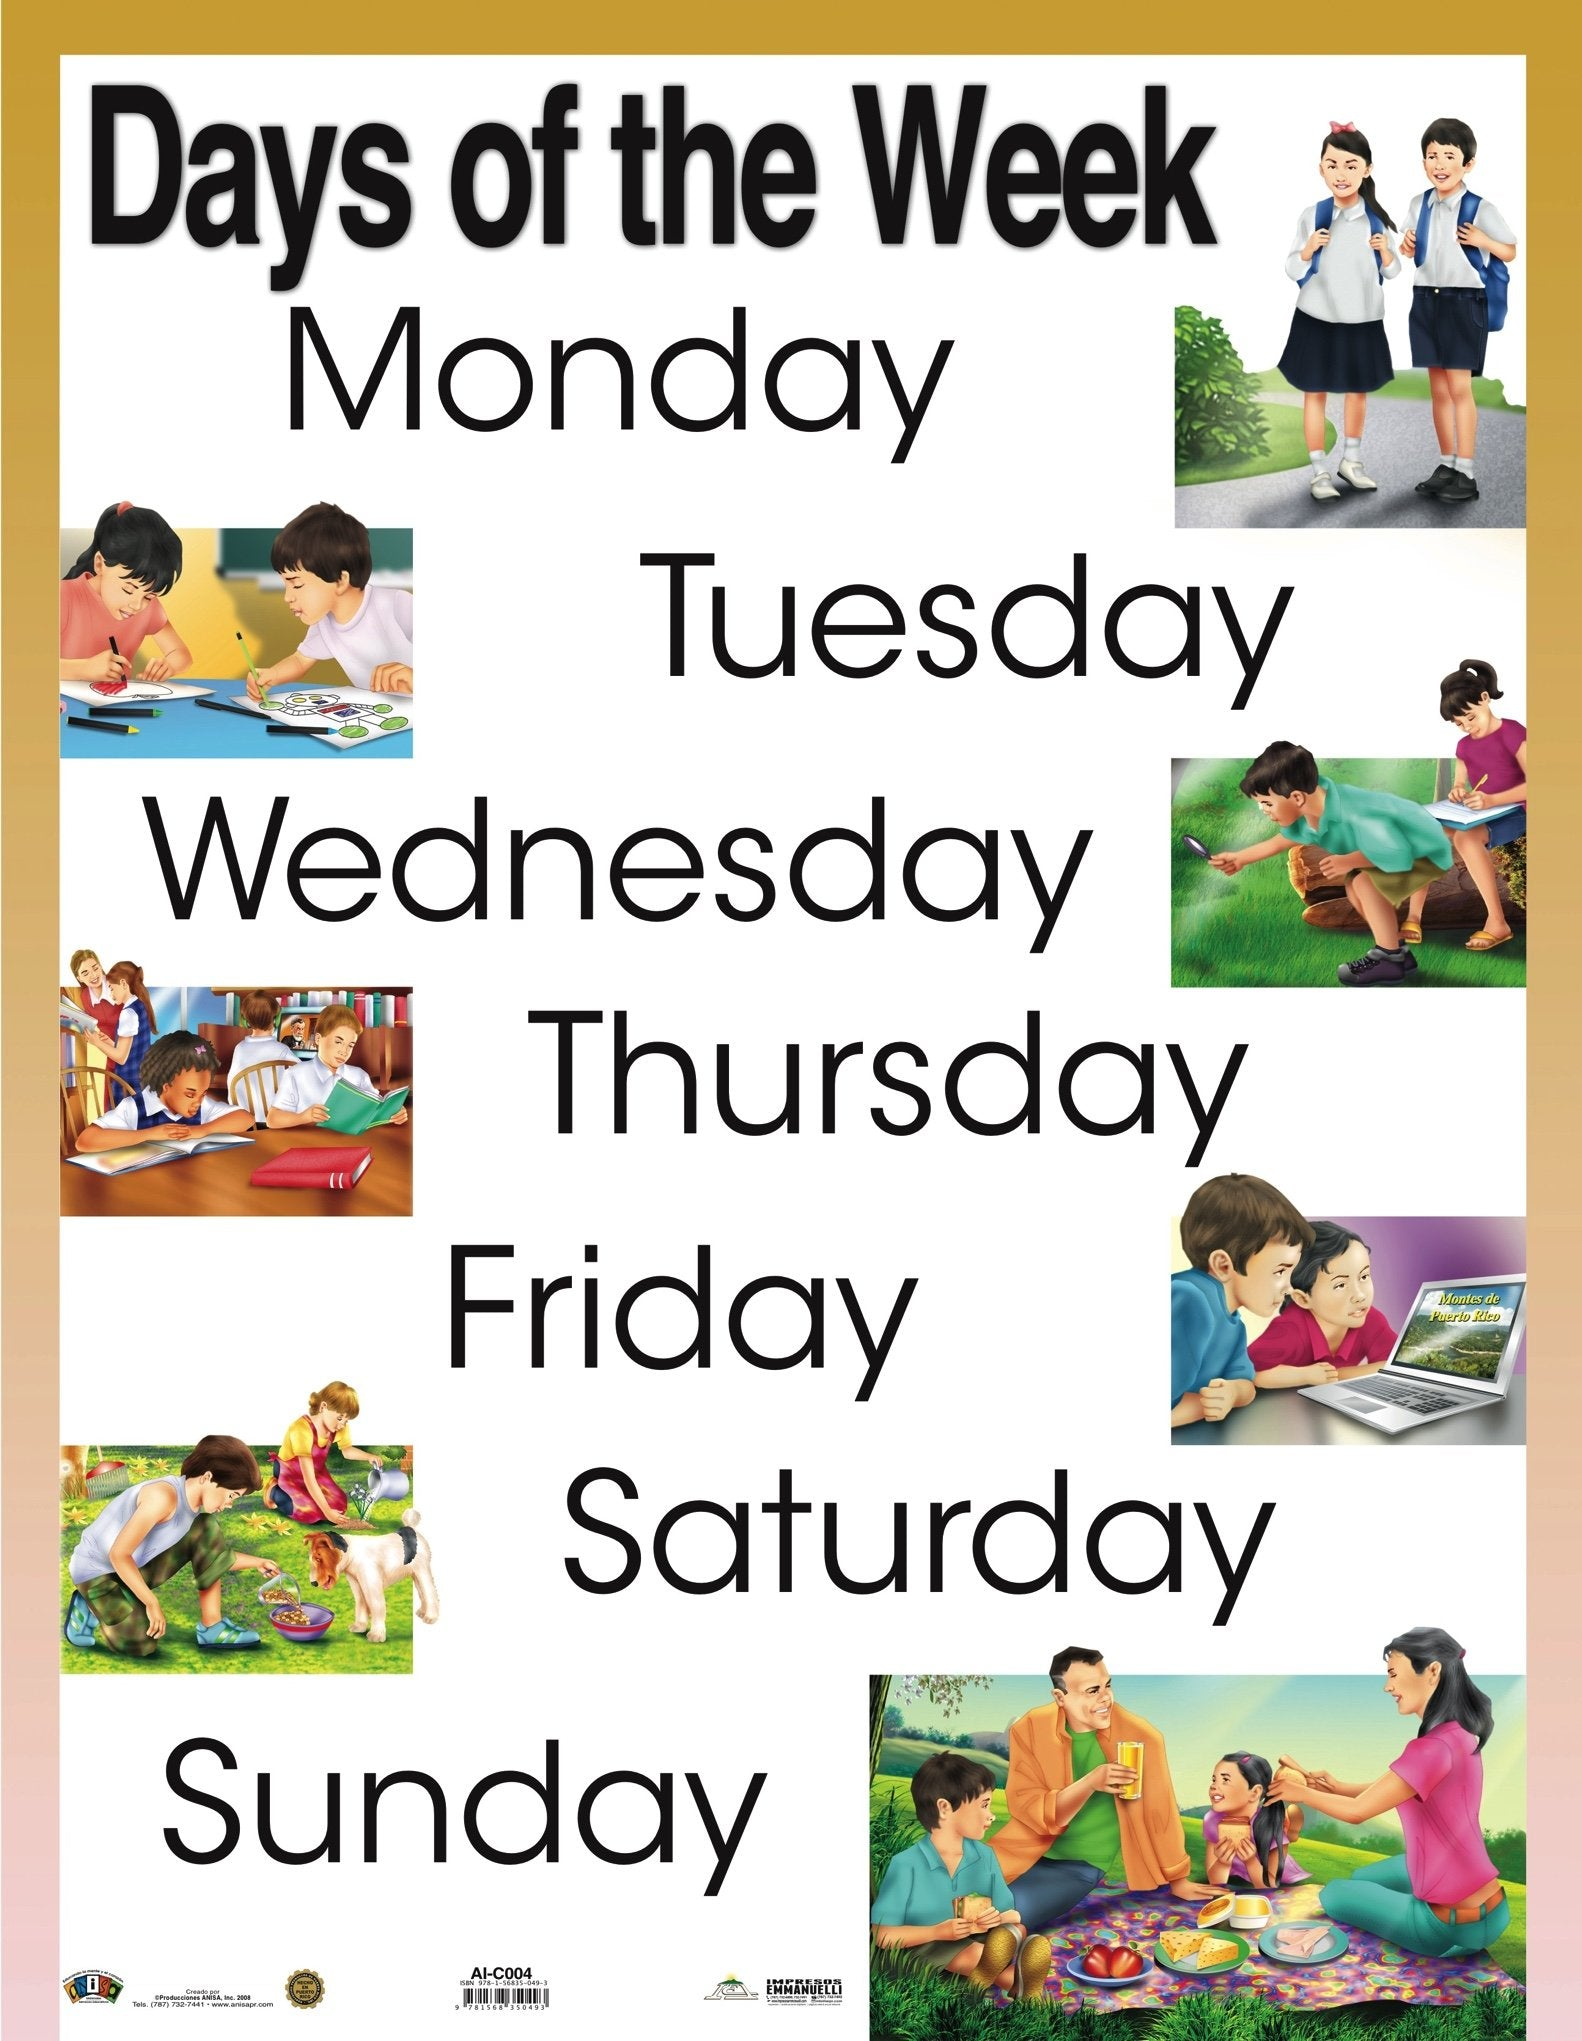 AI-C004 Days of the week